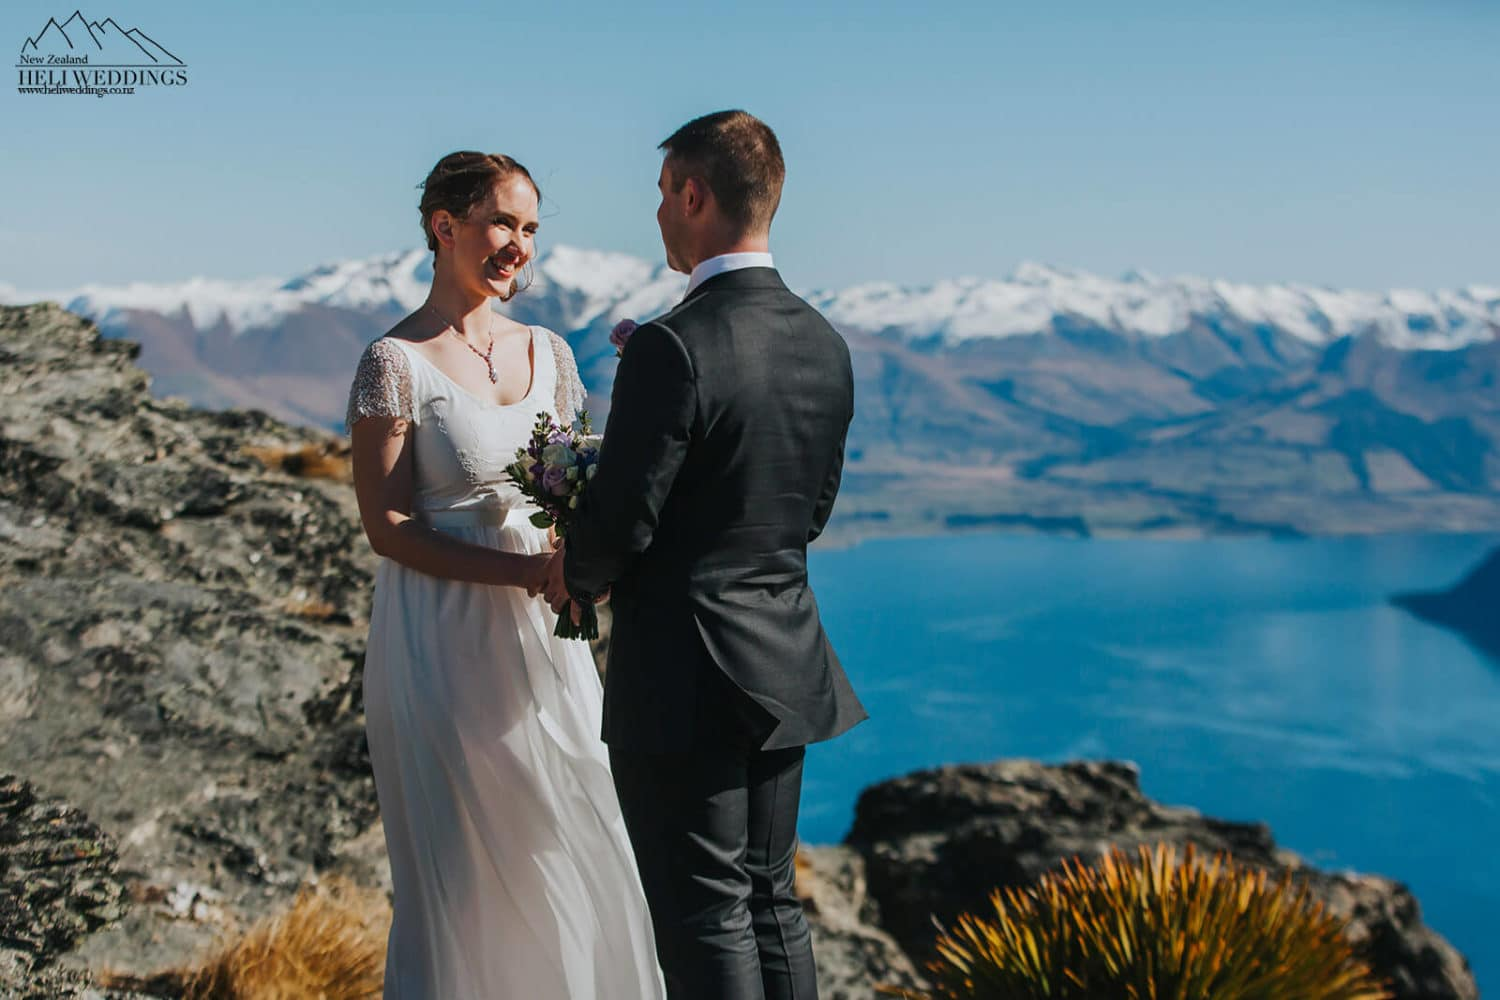 Heli wedding ceremony on The Ledge in Queenstown